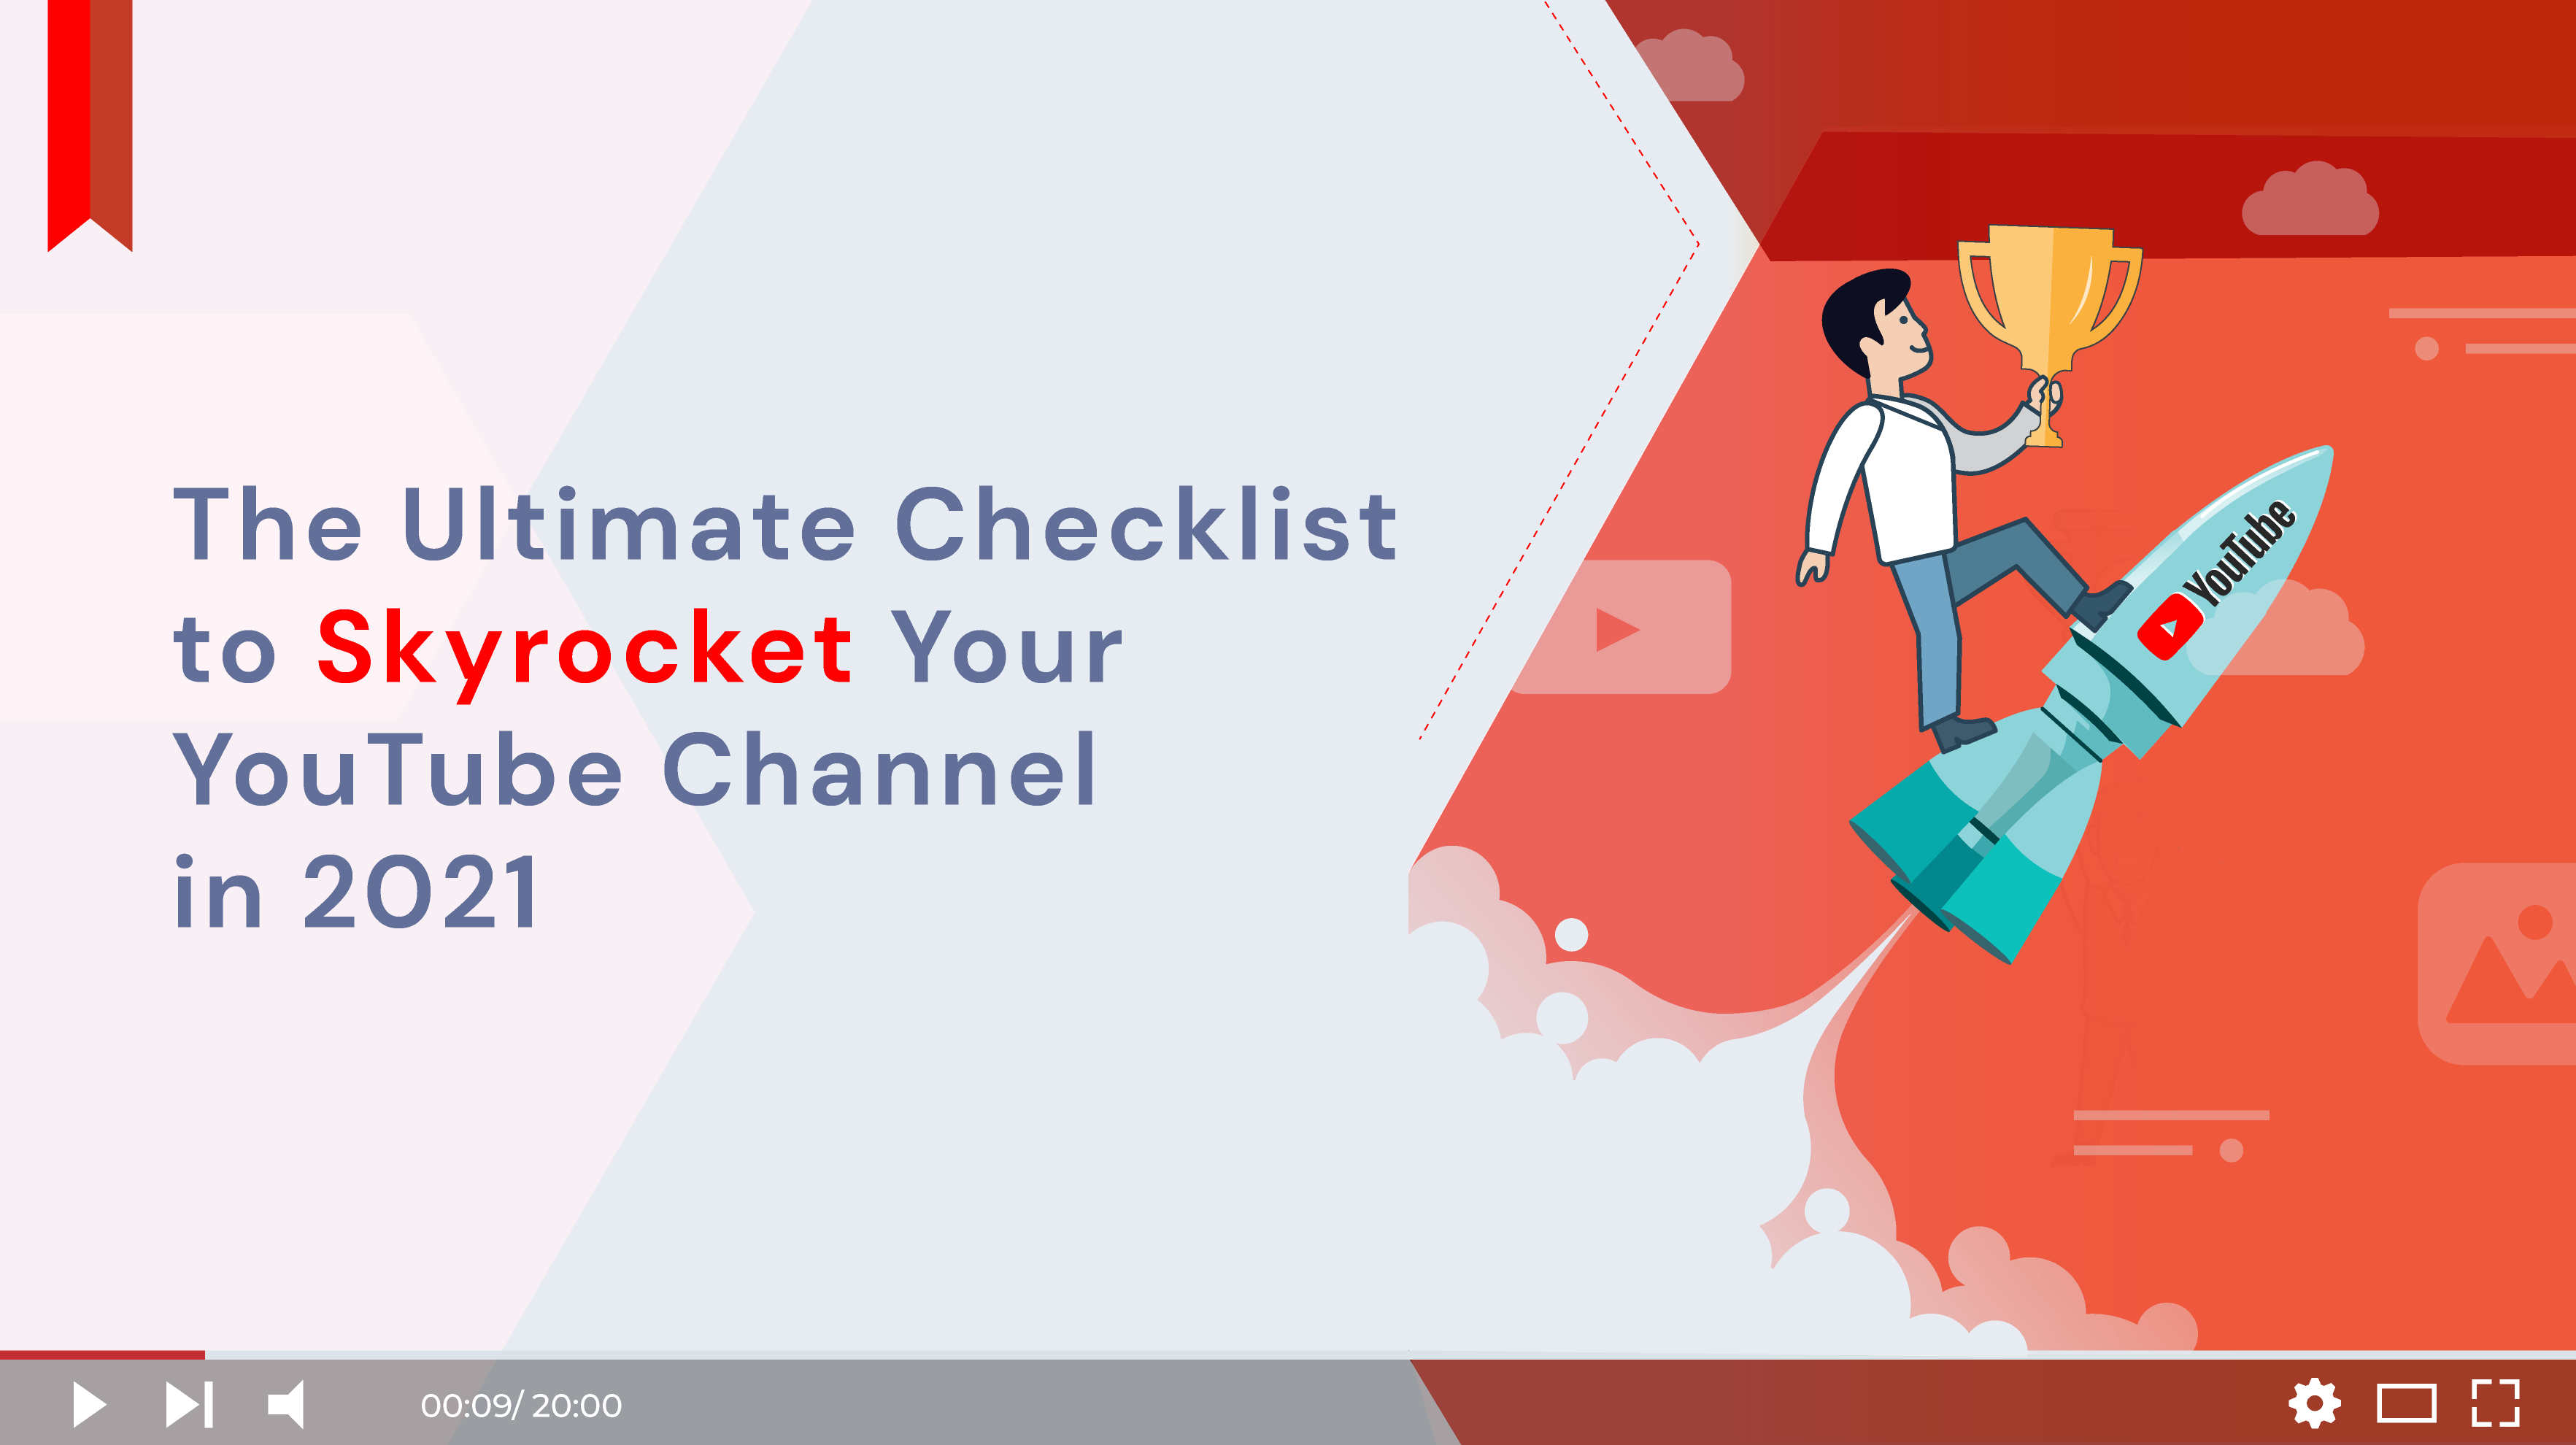 The Ultimate Checklist to Skyrocket Your YouTube Channel's Growth